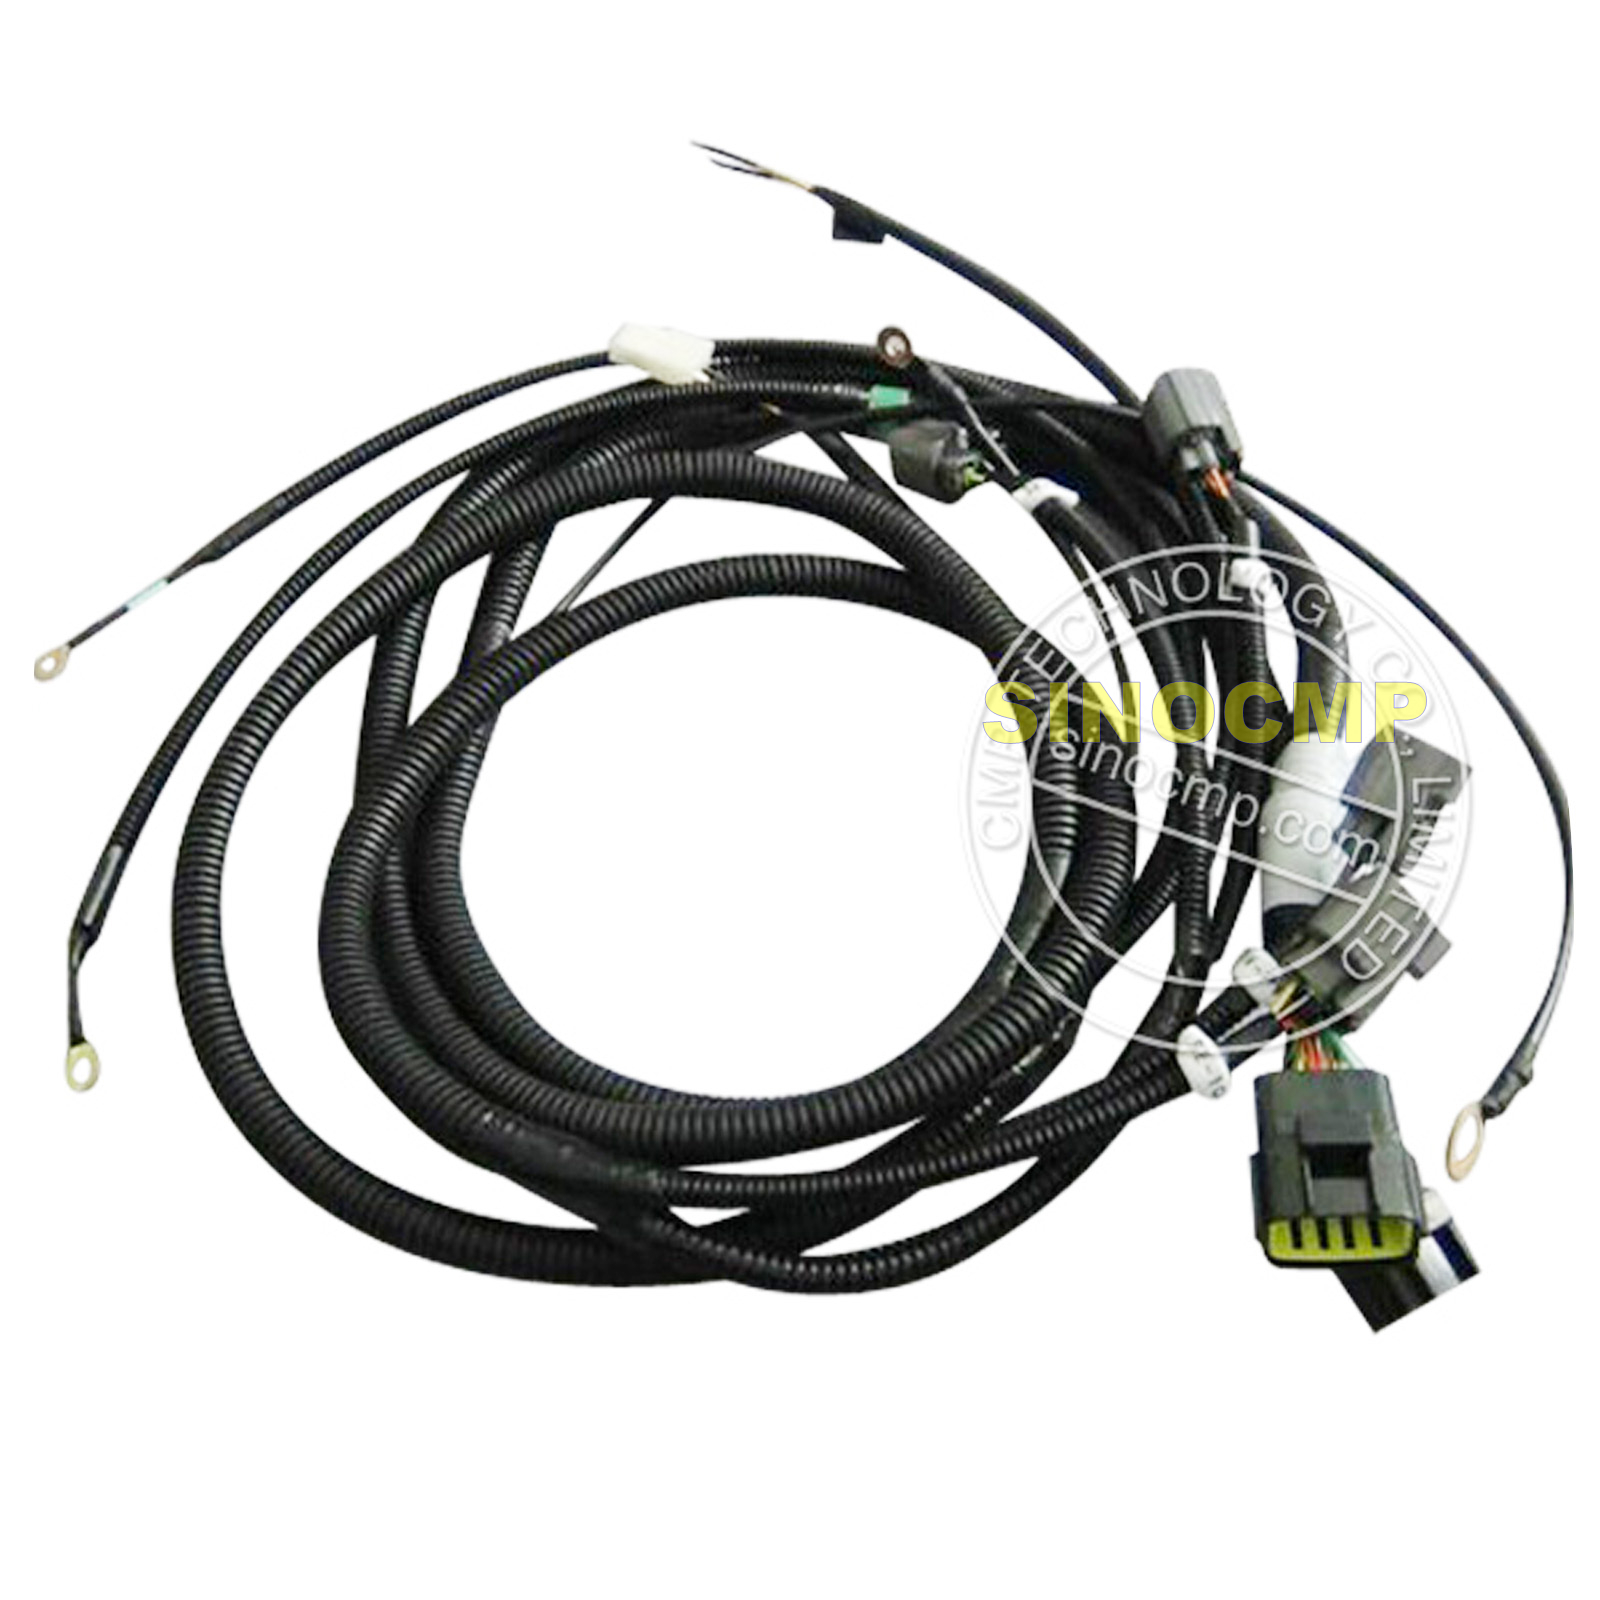 Plete Wiring Harness Ebay Diagram Third Level Aircraft Library Wire Assembly Hydraulic Pump For Kobelco